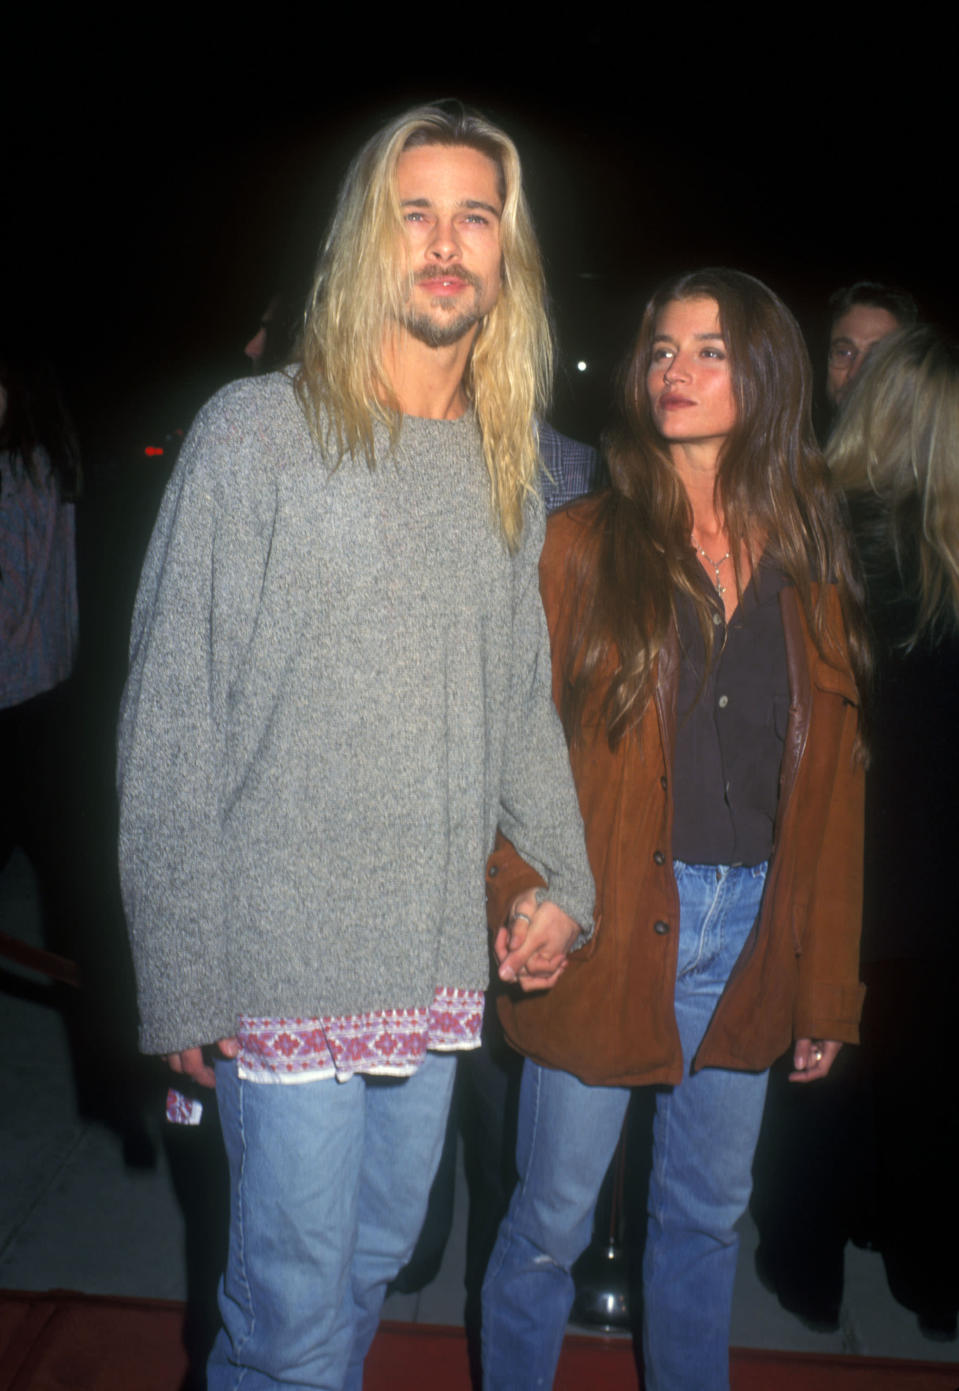 <p>In 1994, Brad channeled his inner hippie when he stepped out with then girlfriend Jitka Pohledek, who wore her flowing locks in a boho down style. Photo: Getty Images </p>